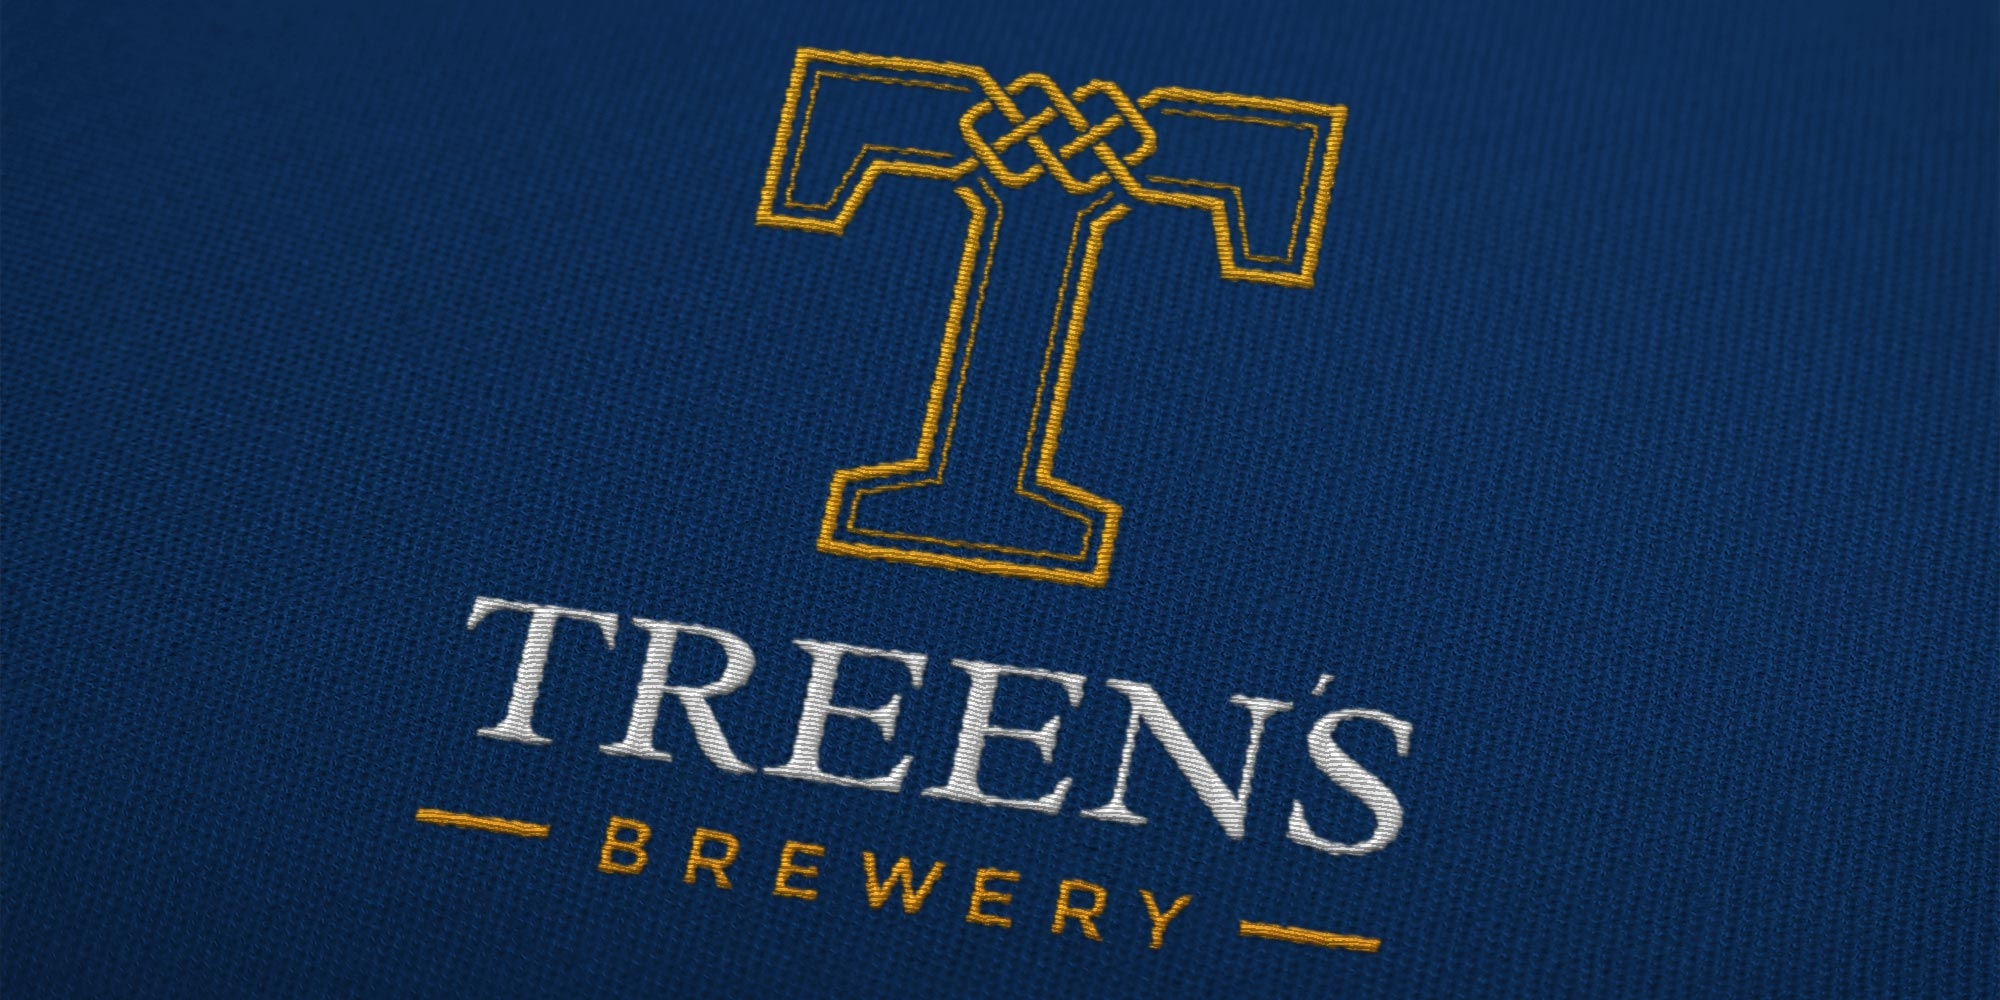 Treen's Brewery Print Design on Uniform